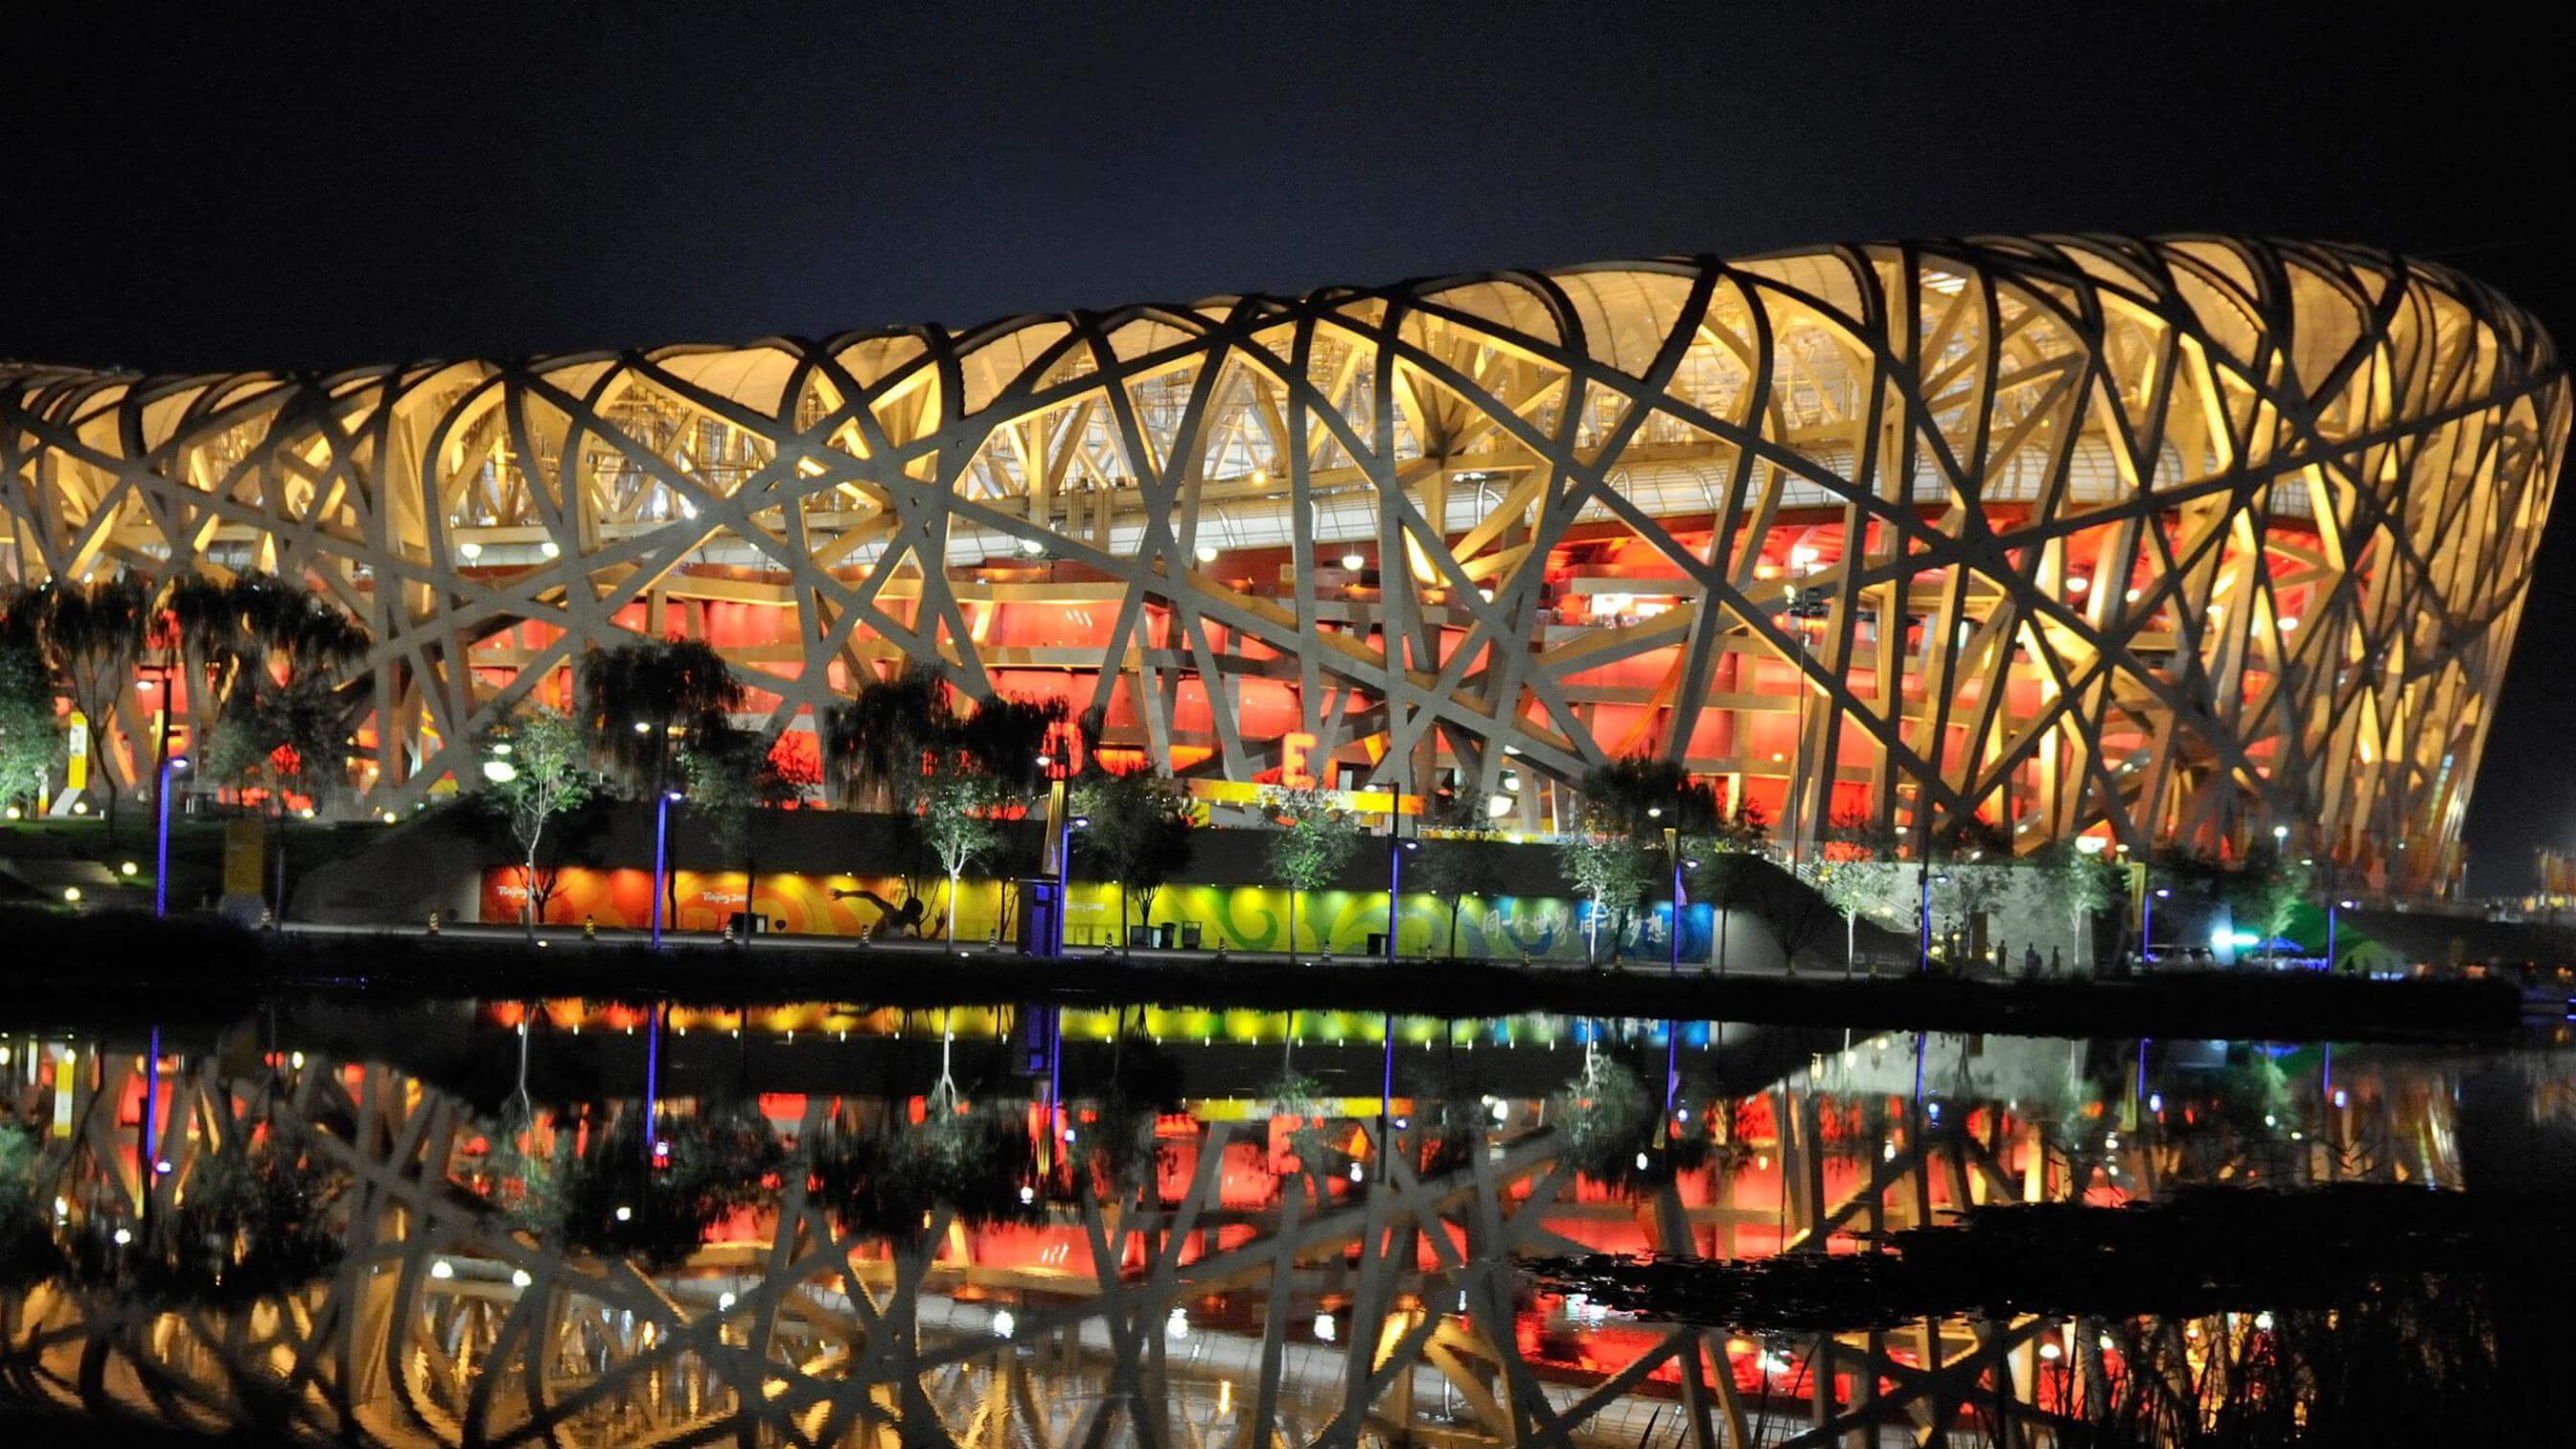 Beijing Olympic stadium lit up at night